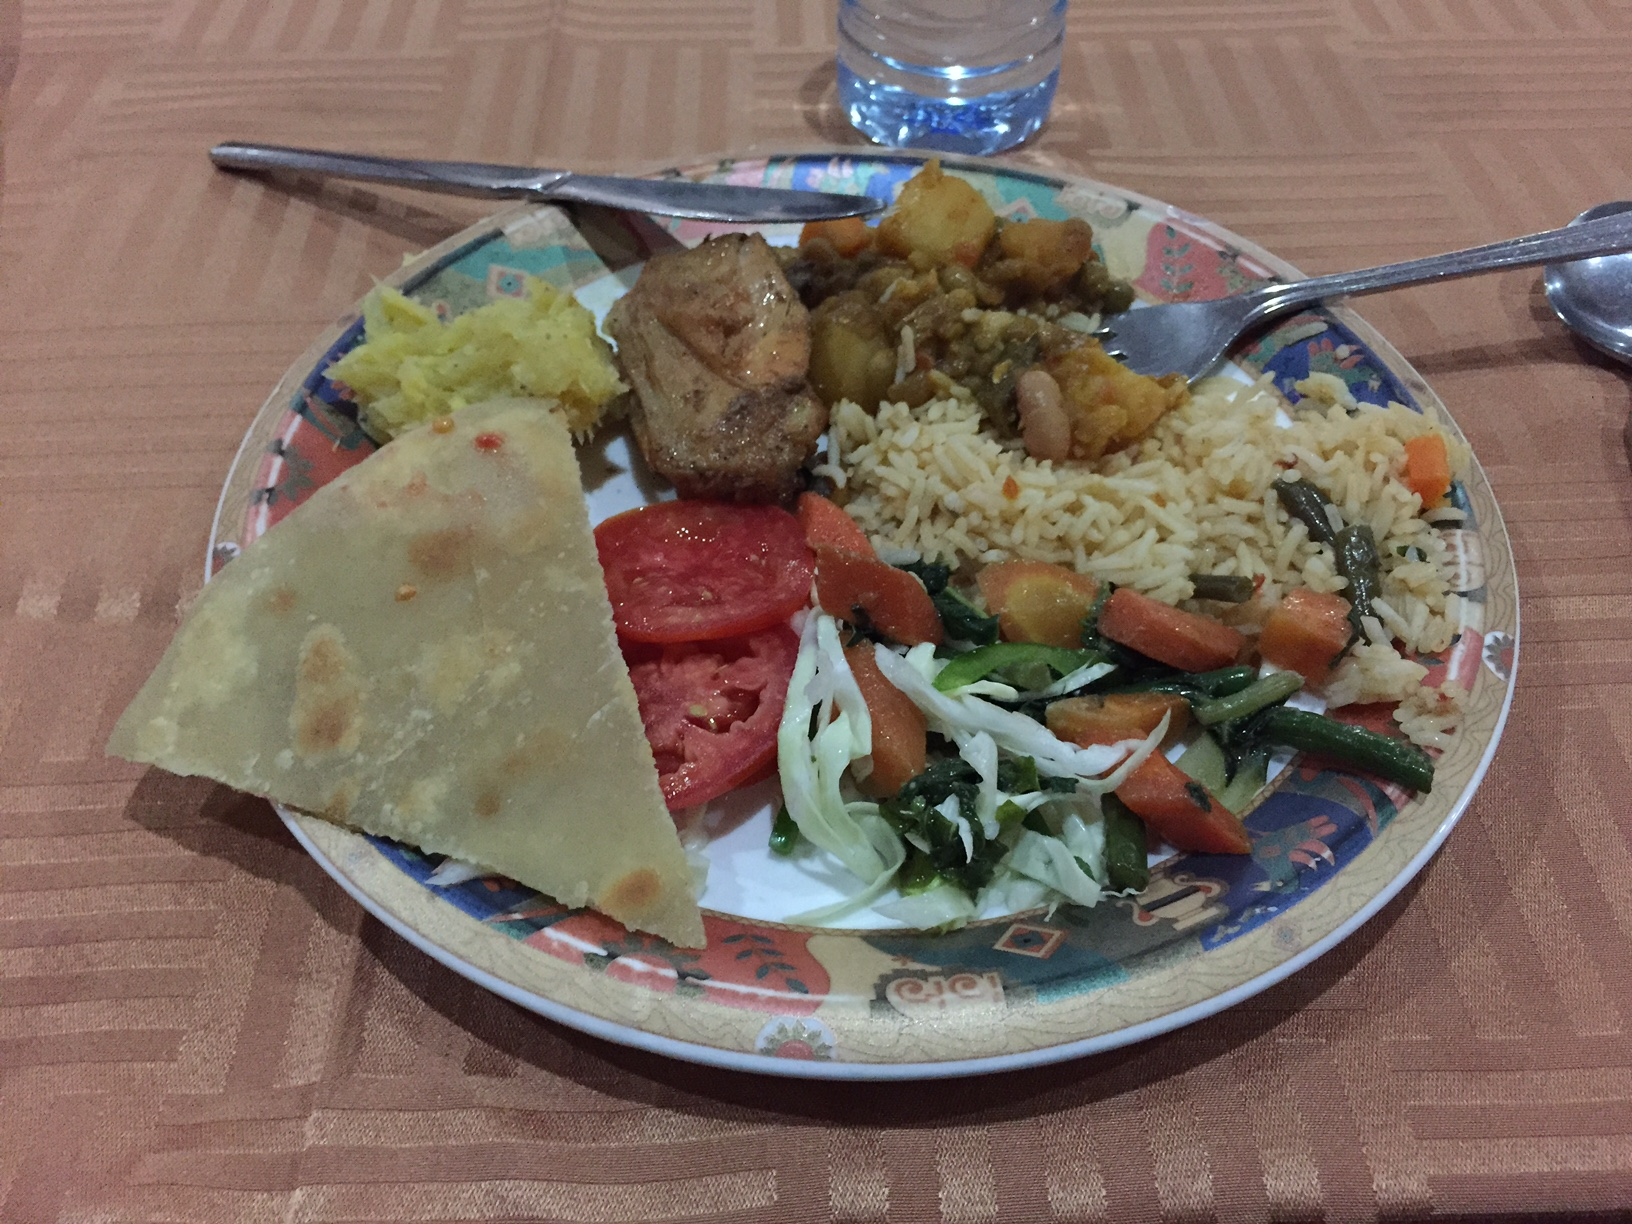 Food was actually quite good...though I was starving, so I may be unreliable.